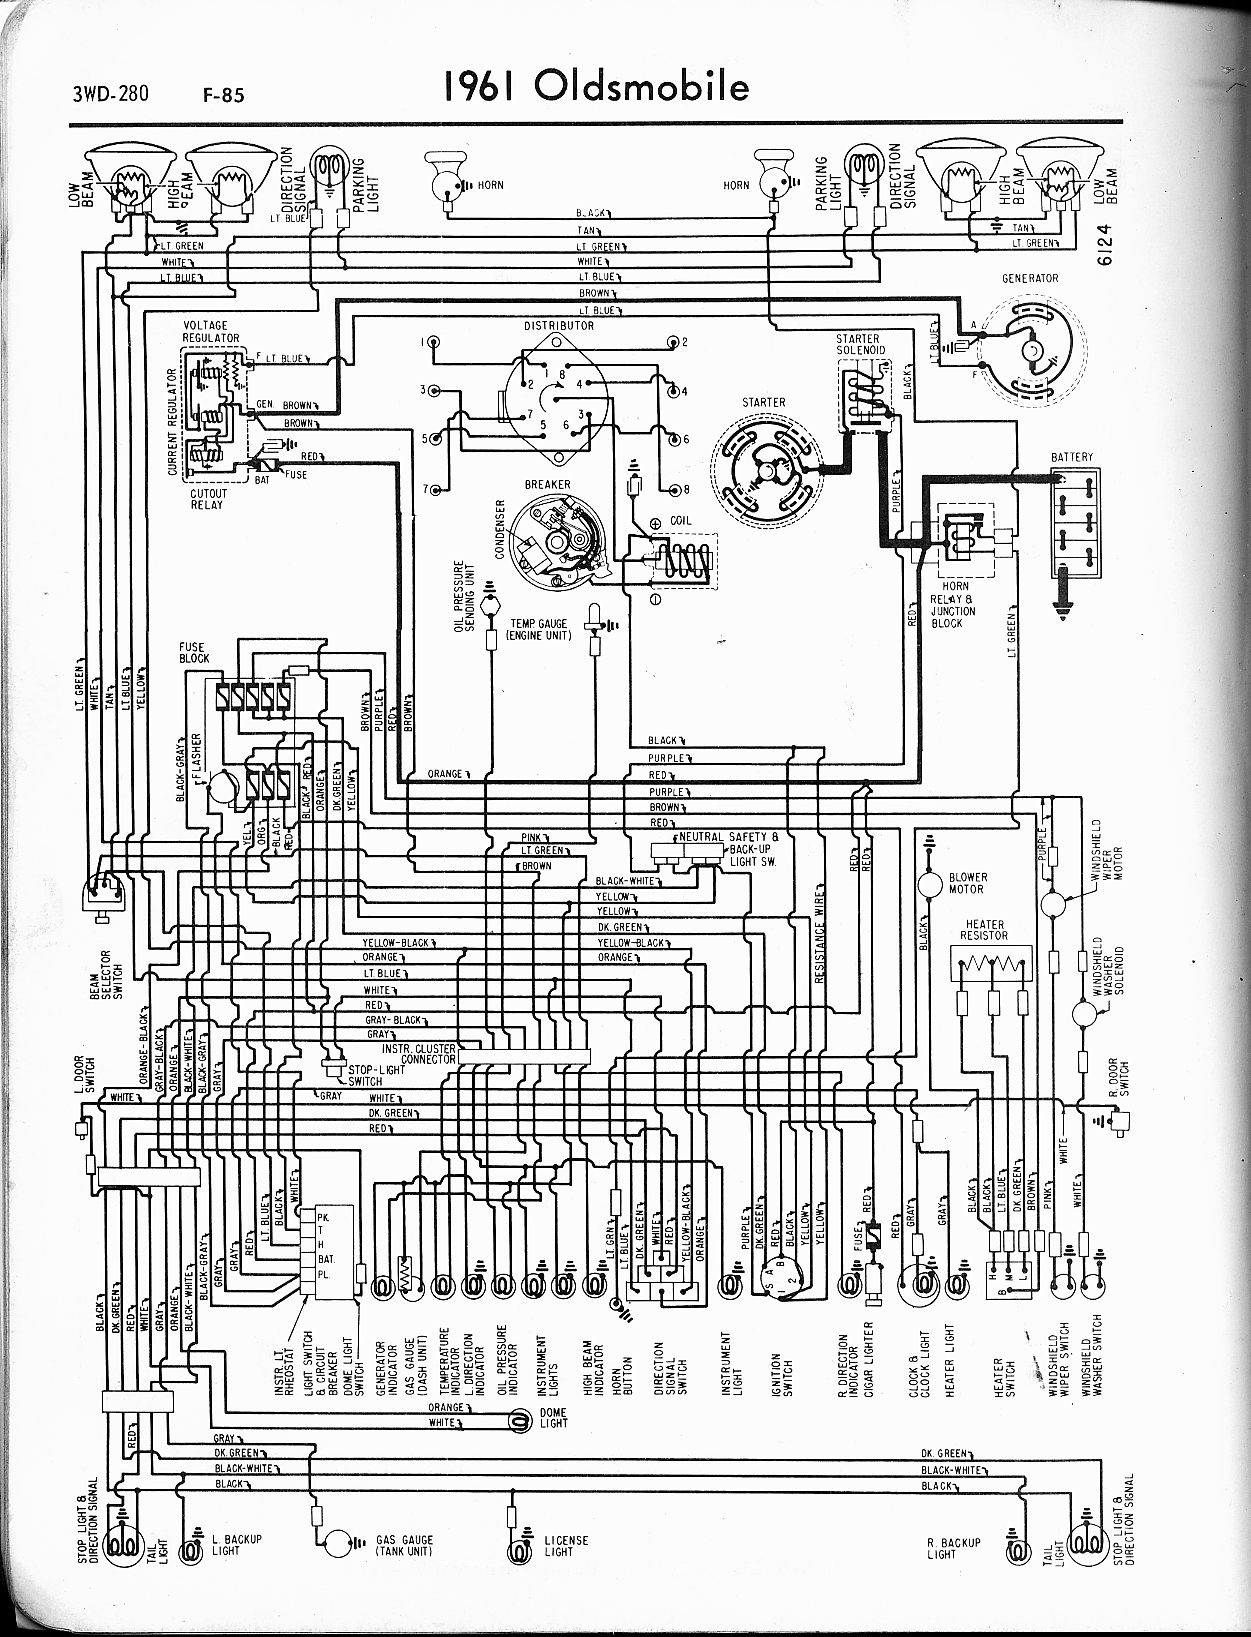 MWire5765 280 oldsmobile wiring diagrams the old car manual project 67 firebird wiring diagram at nearapp.co